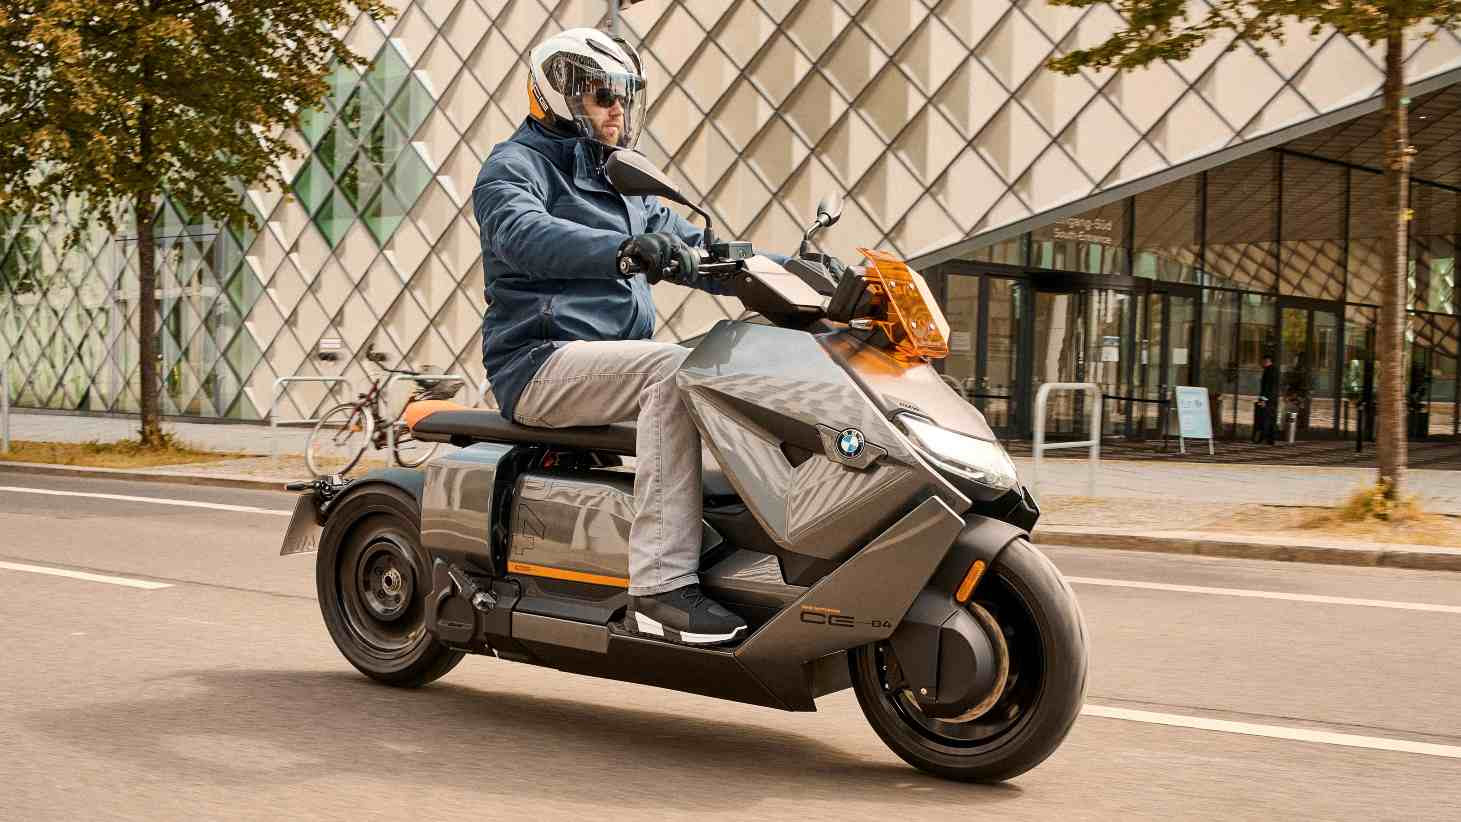 The BMW CE 04 can get from 0 to 50 kph in just 2.6 seconds. Image: BMW Motorrad